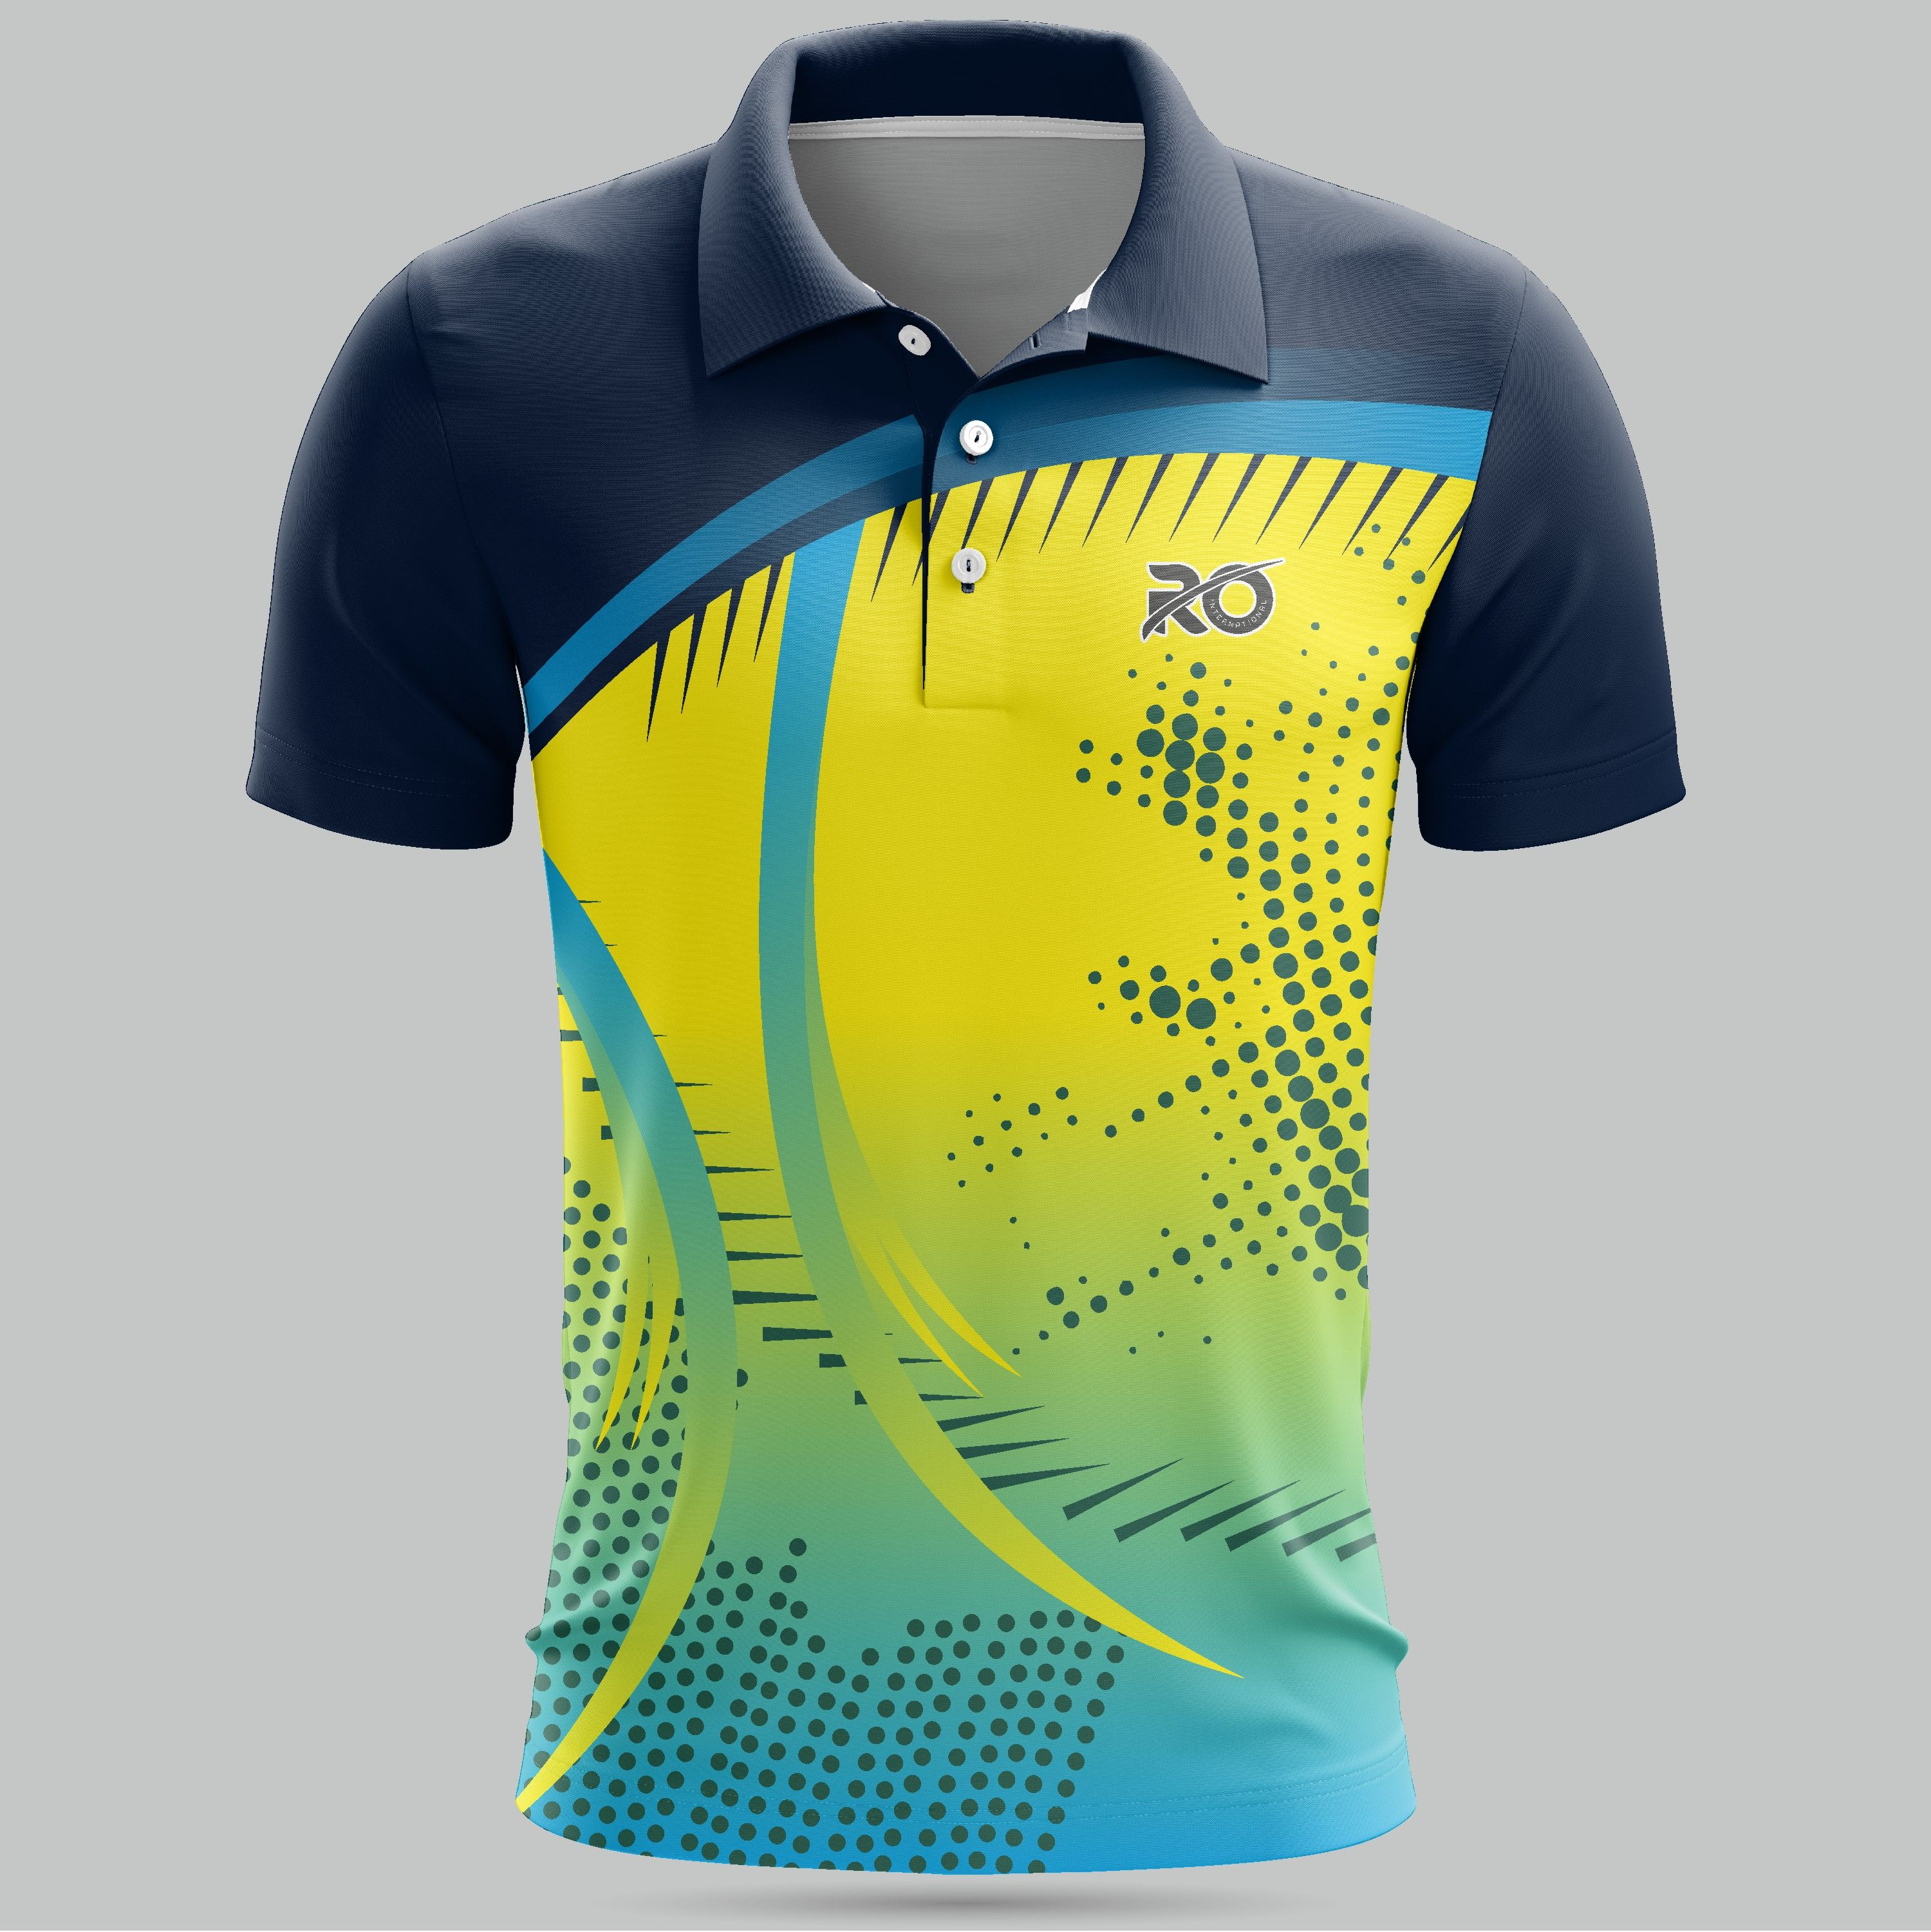 Download Cricket Sublimation In 2021 Sports Jersey Design Sports Tshirt Designs Sport Shirt Design